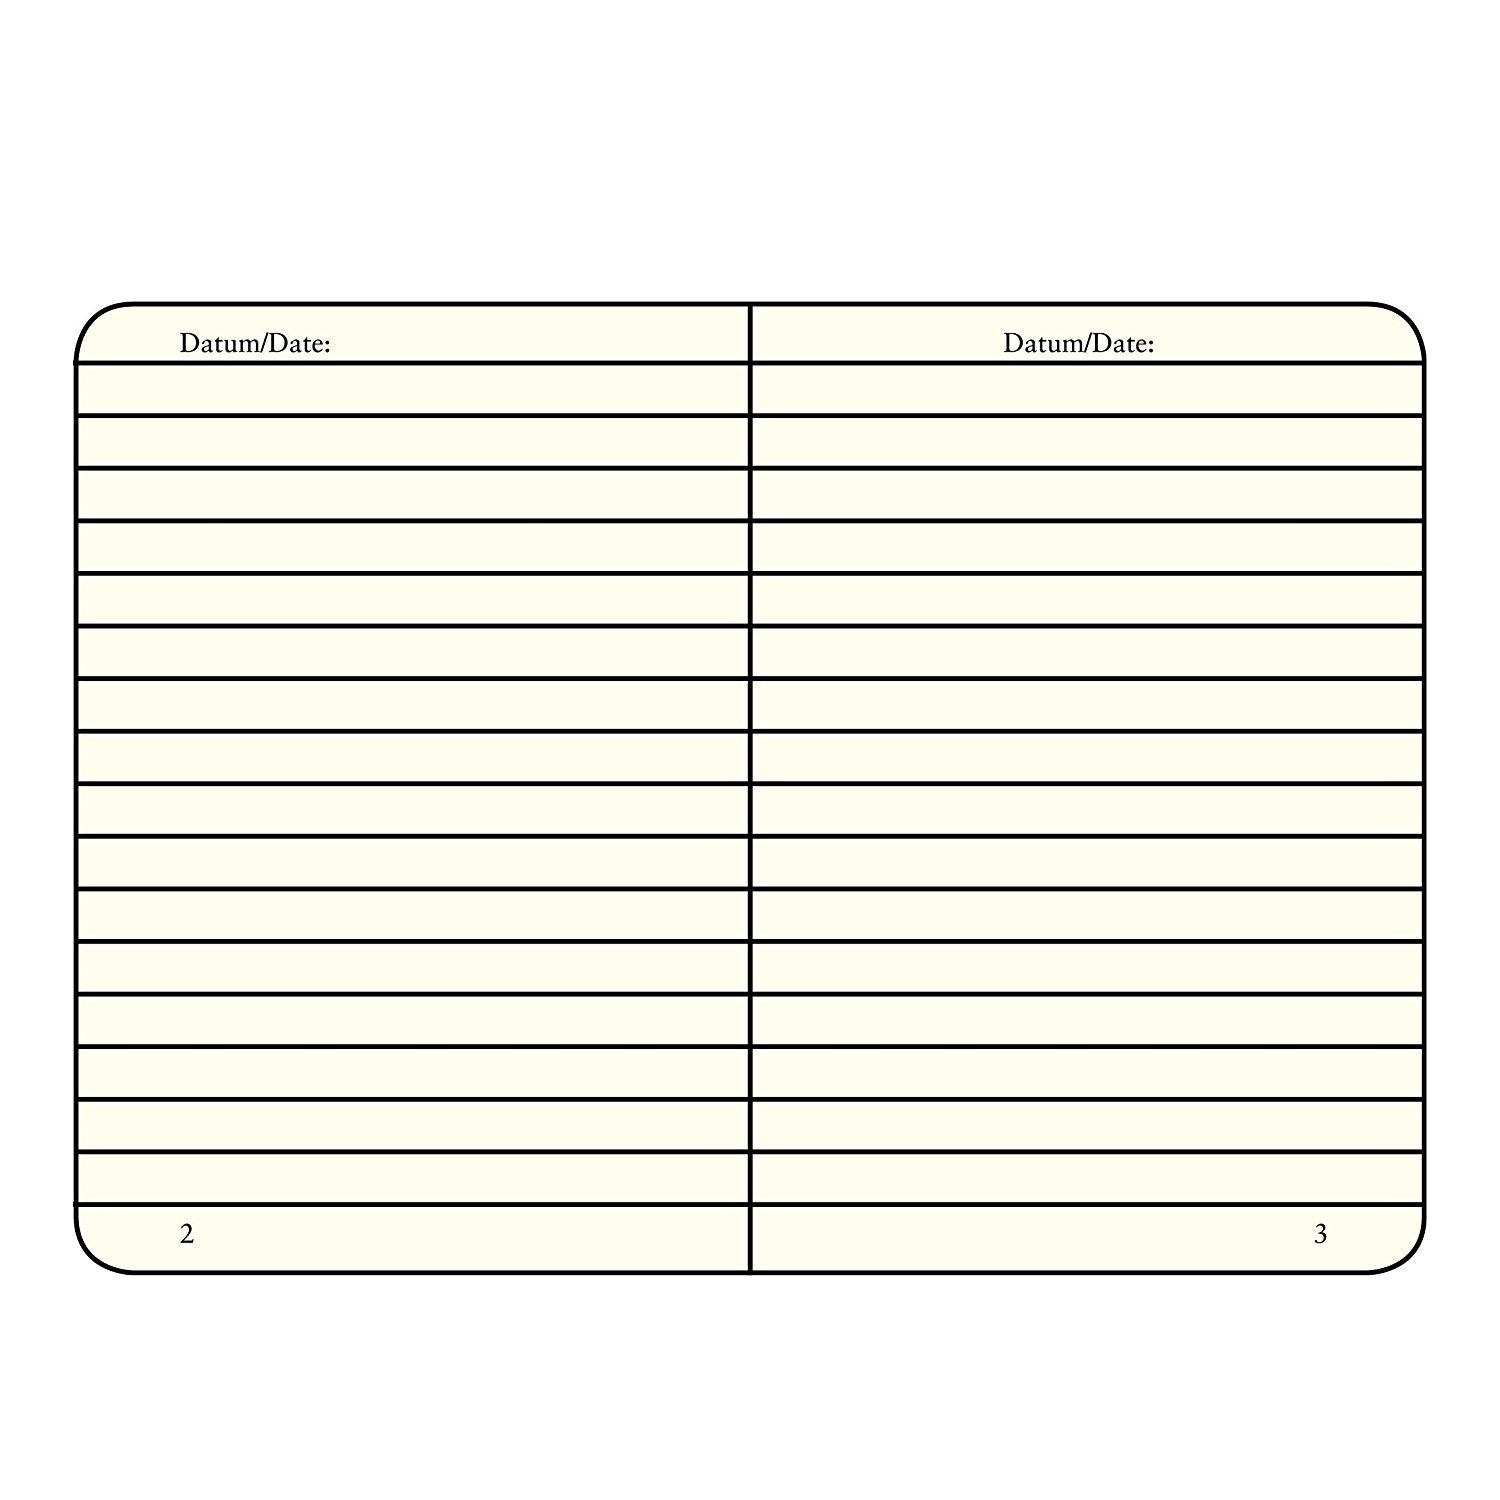 Leuchtturm Notebook Hardcover 145 X 210mm Lined / Ruled